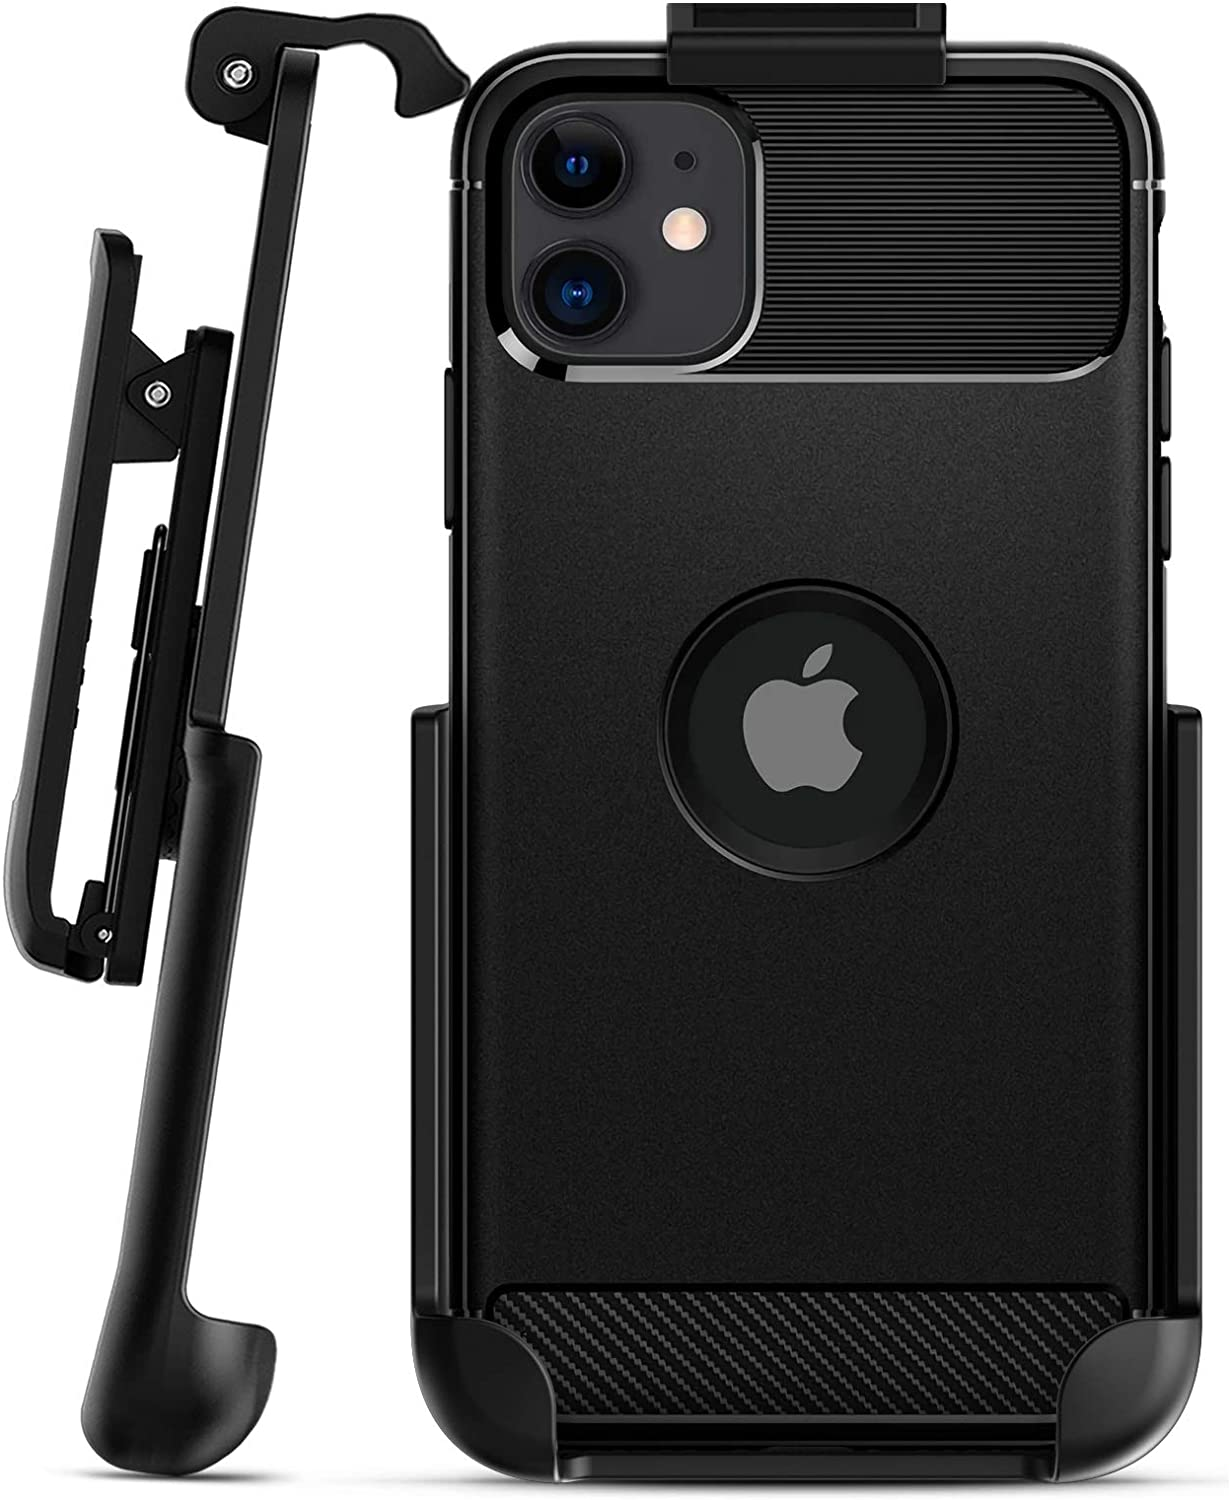 iPhone 11 Holster Only - Case is not Included Encased Belt Clip for Spigen Rugged Armor